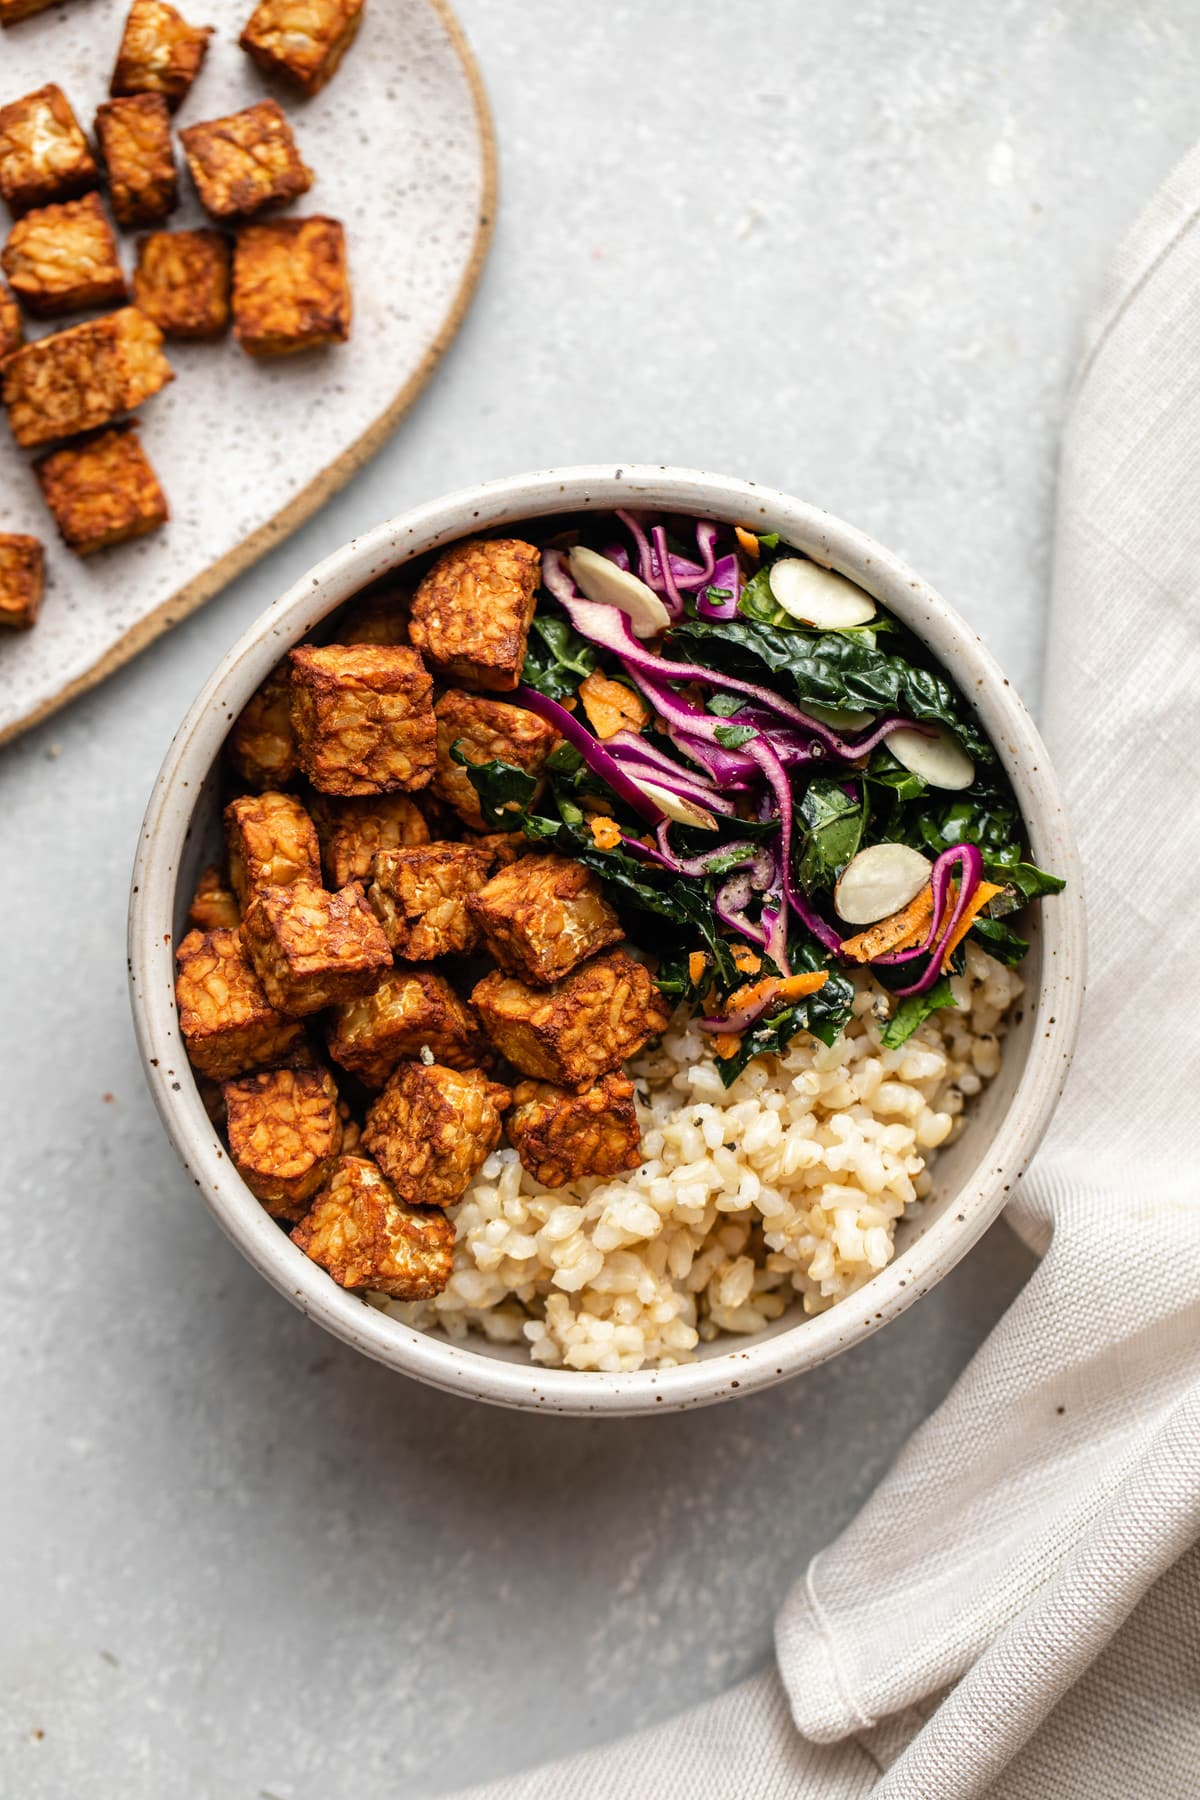 crispy tempeh, kale salad, and rice in bowl